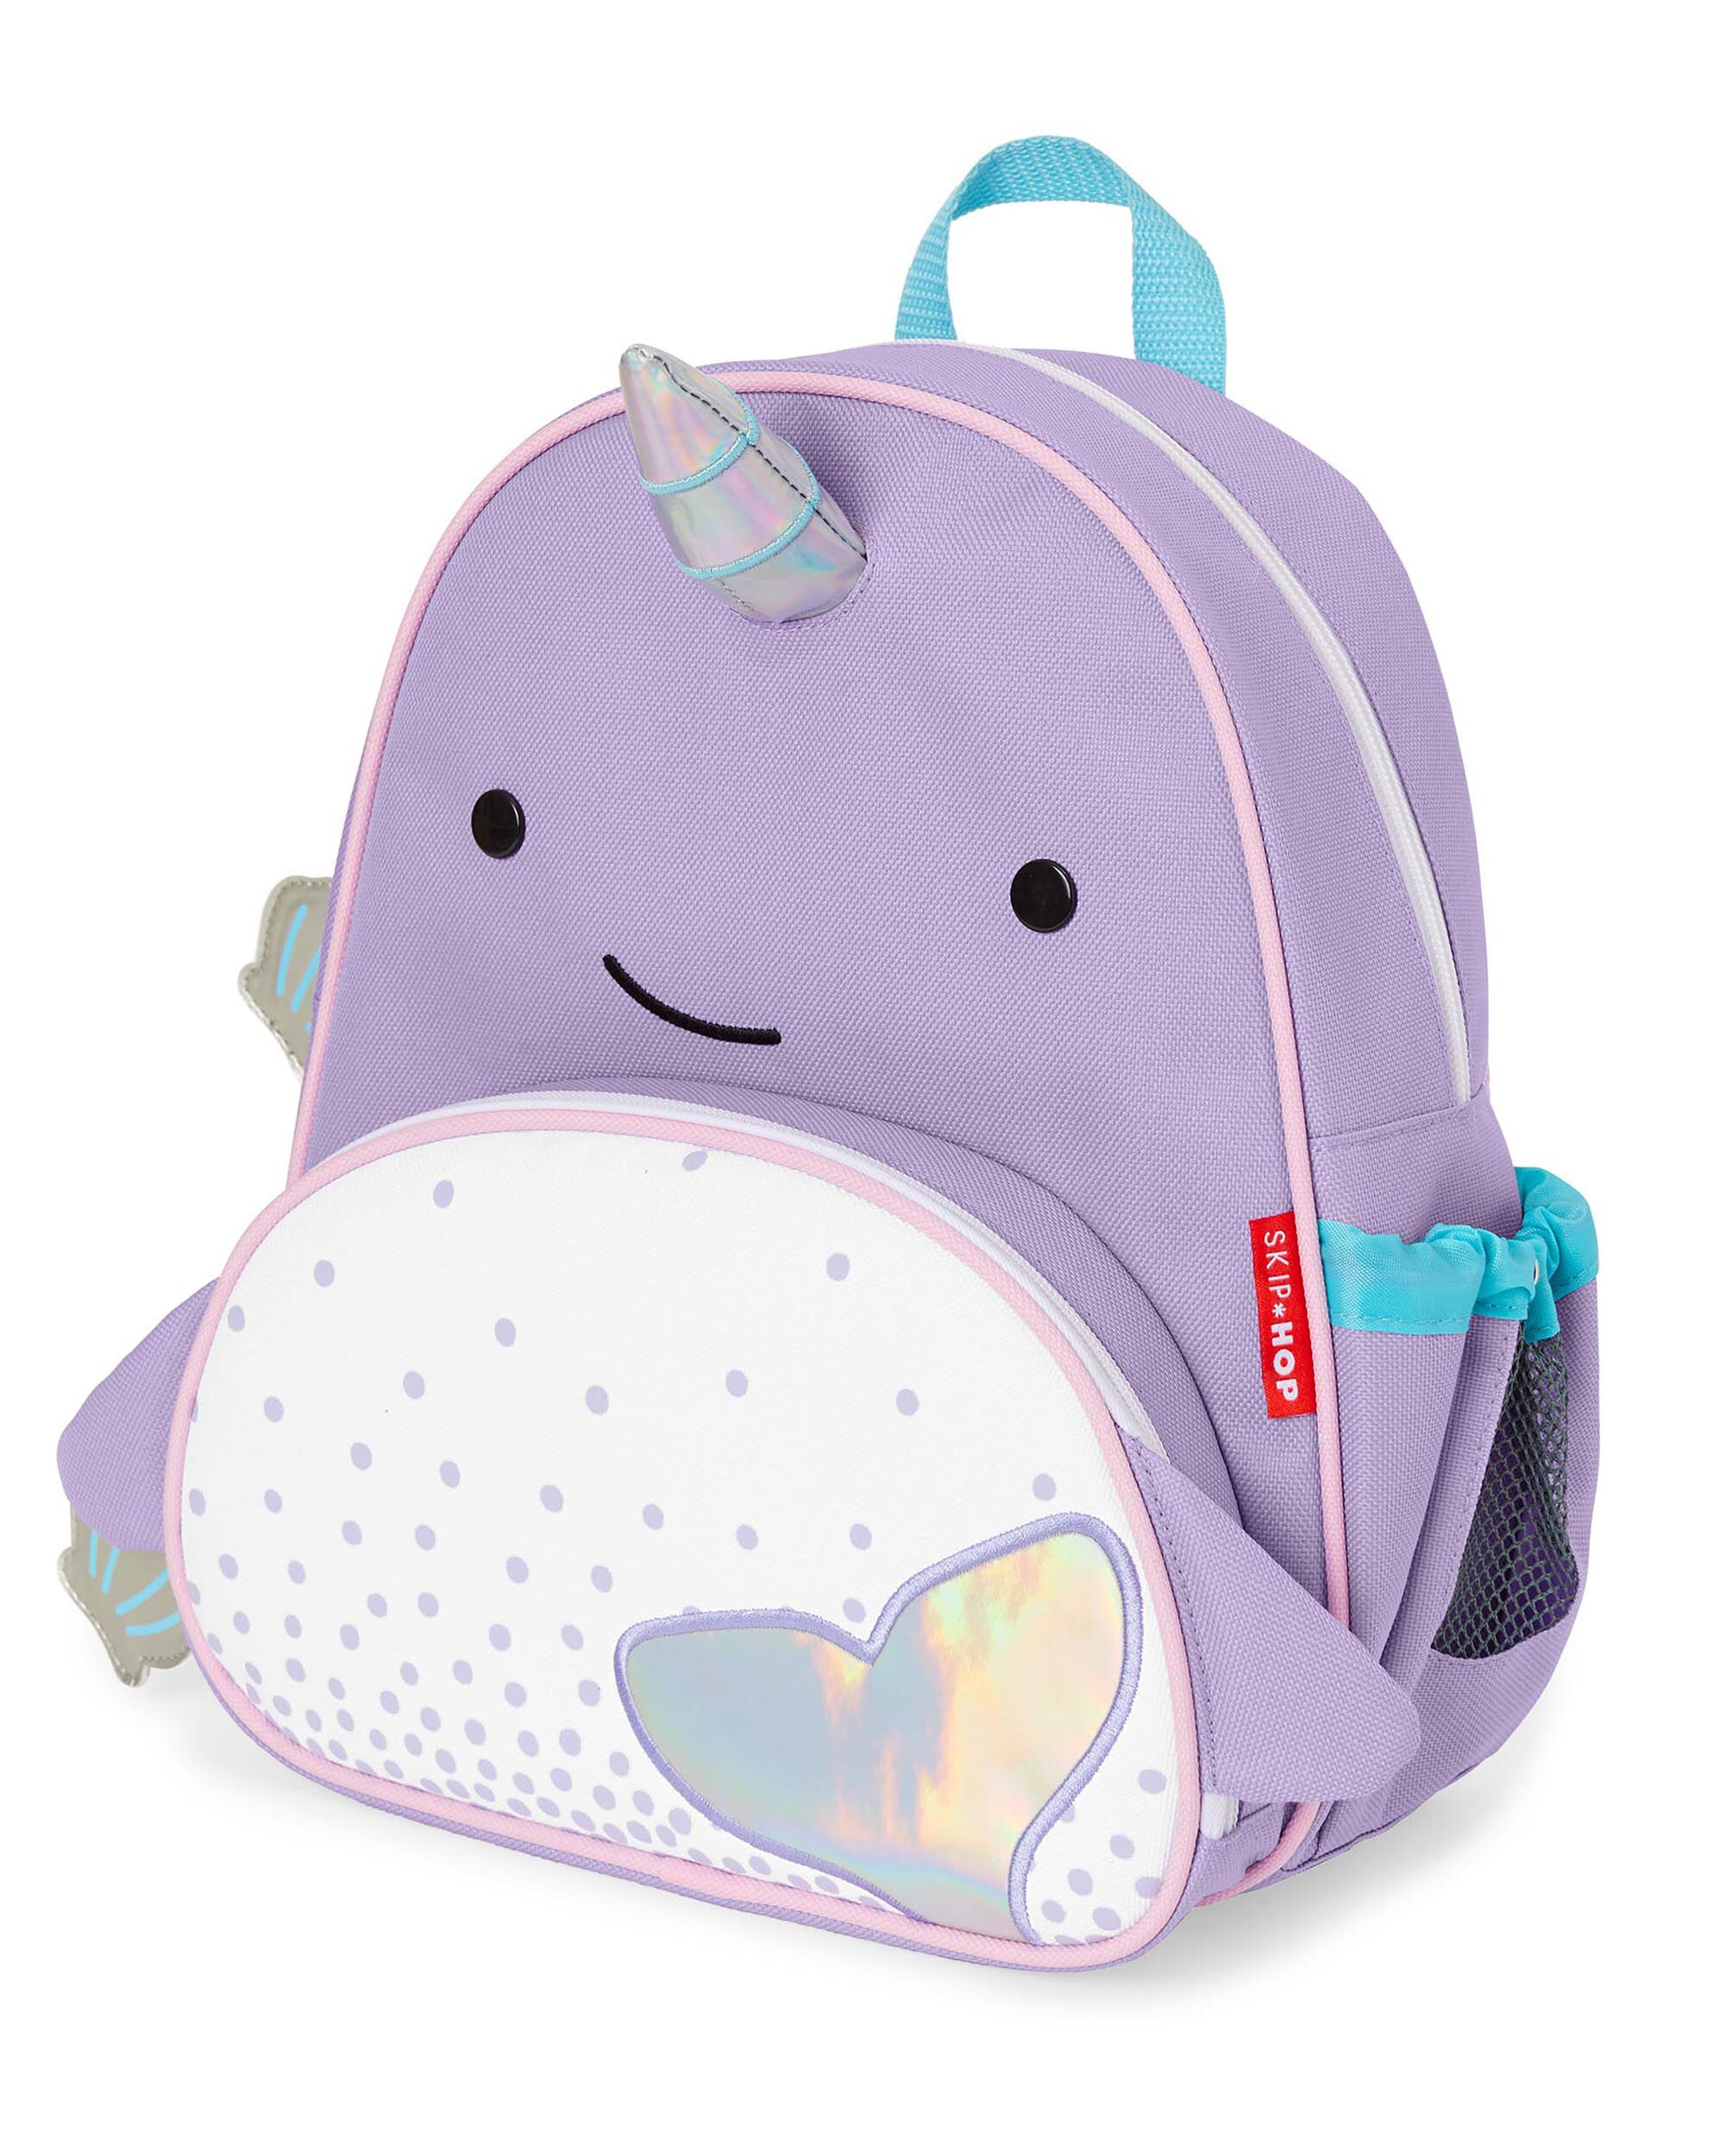 Oshkoshbgosh Zoo Little Kid Backpack